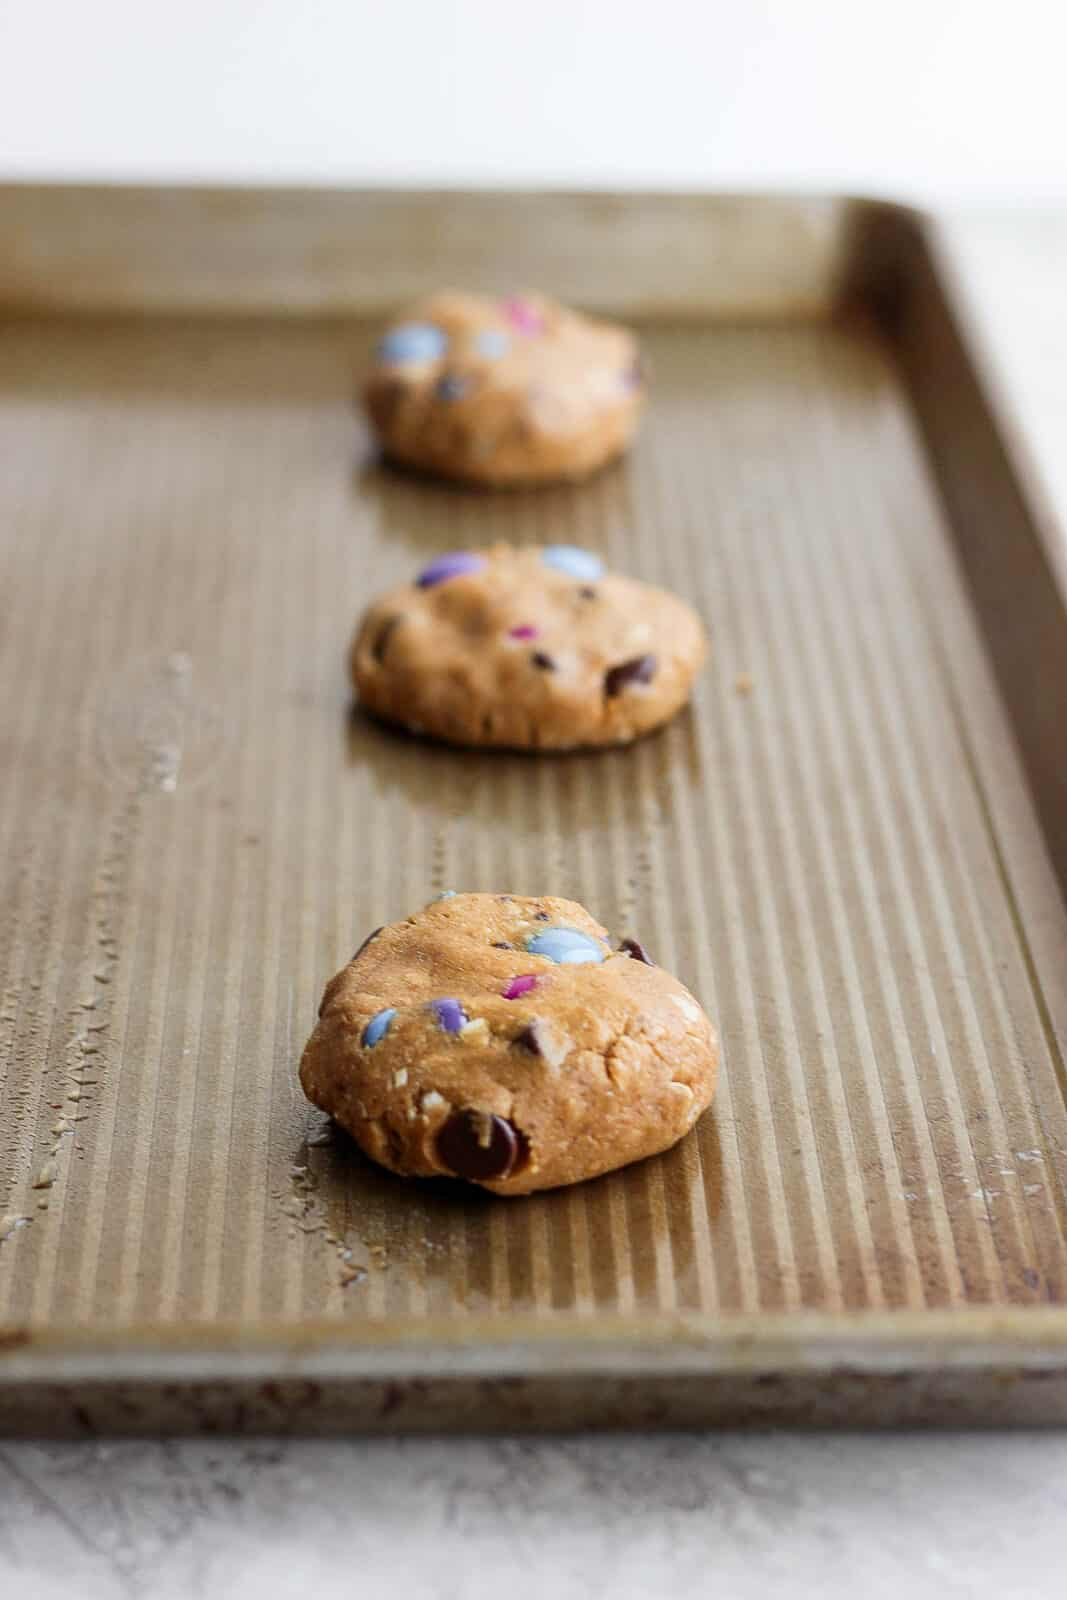 Cookies on a baking sheet before cooking.